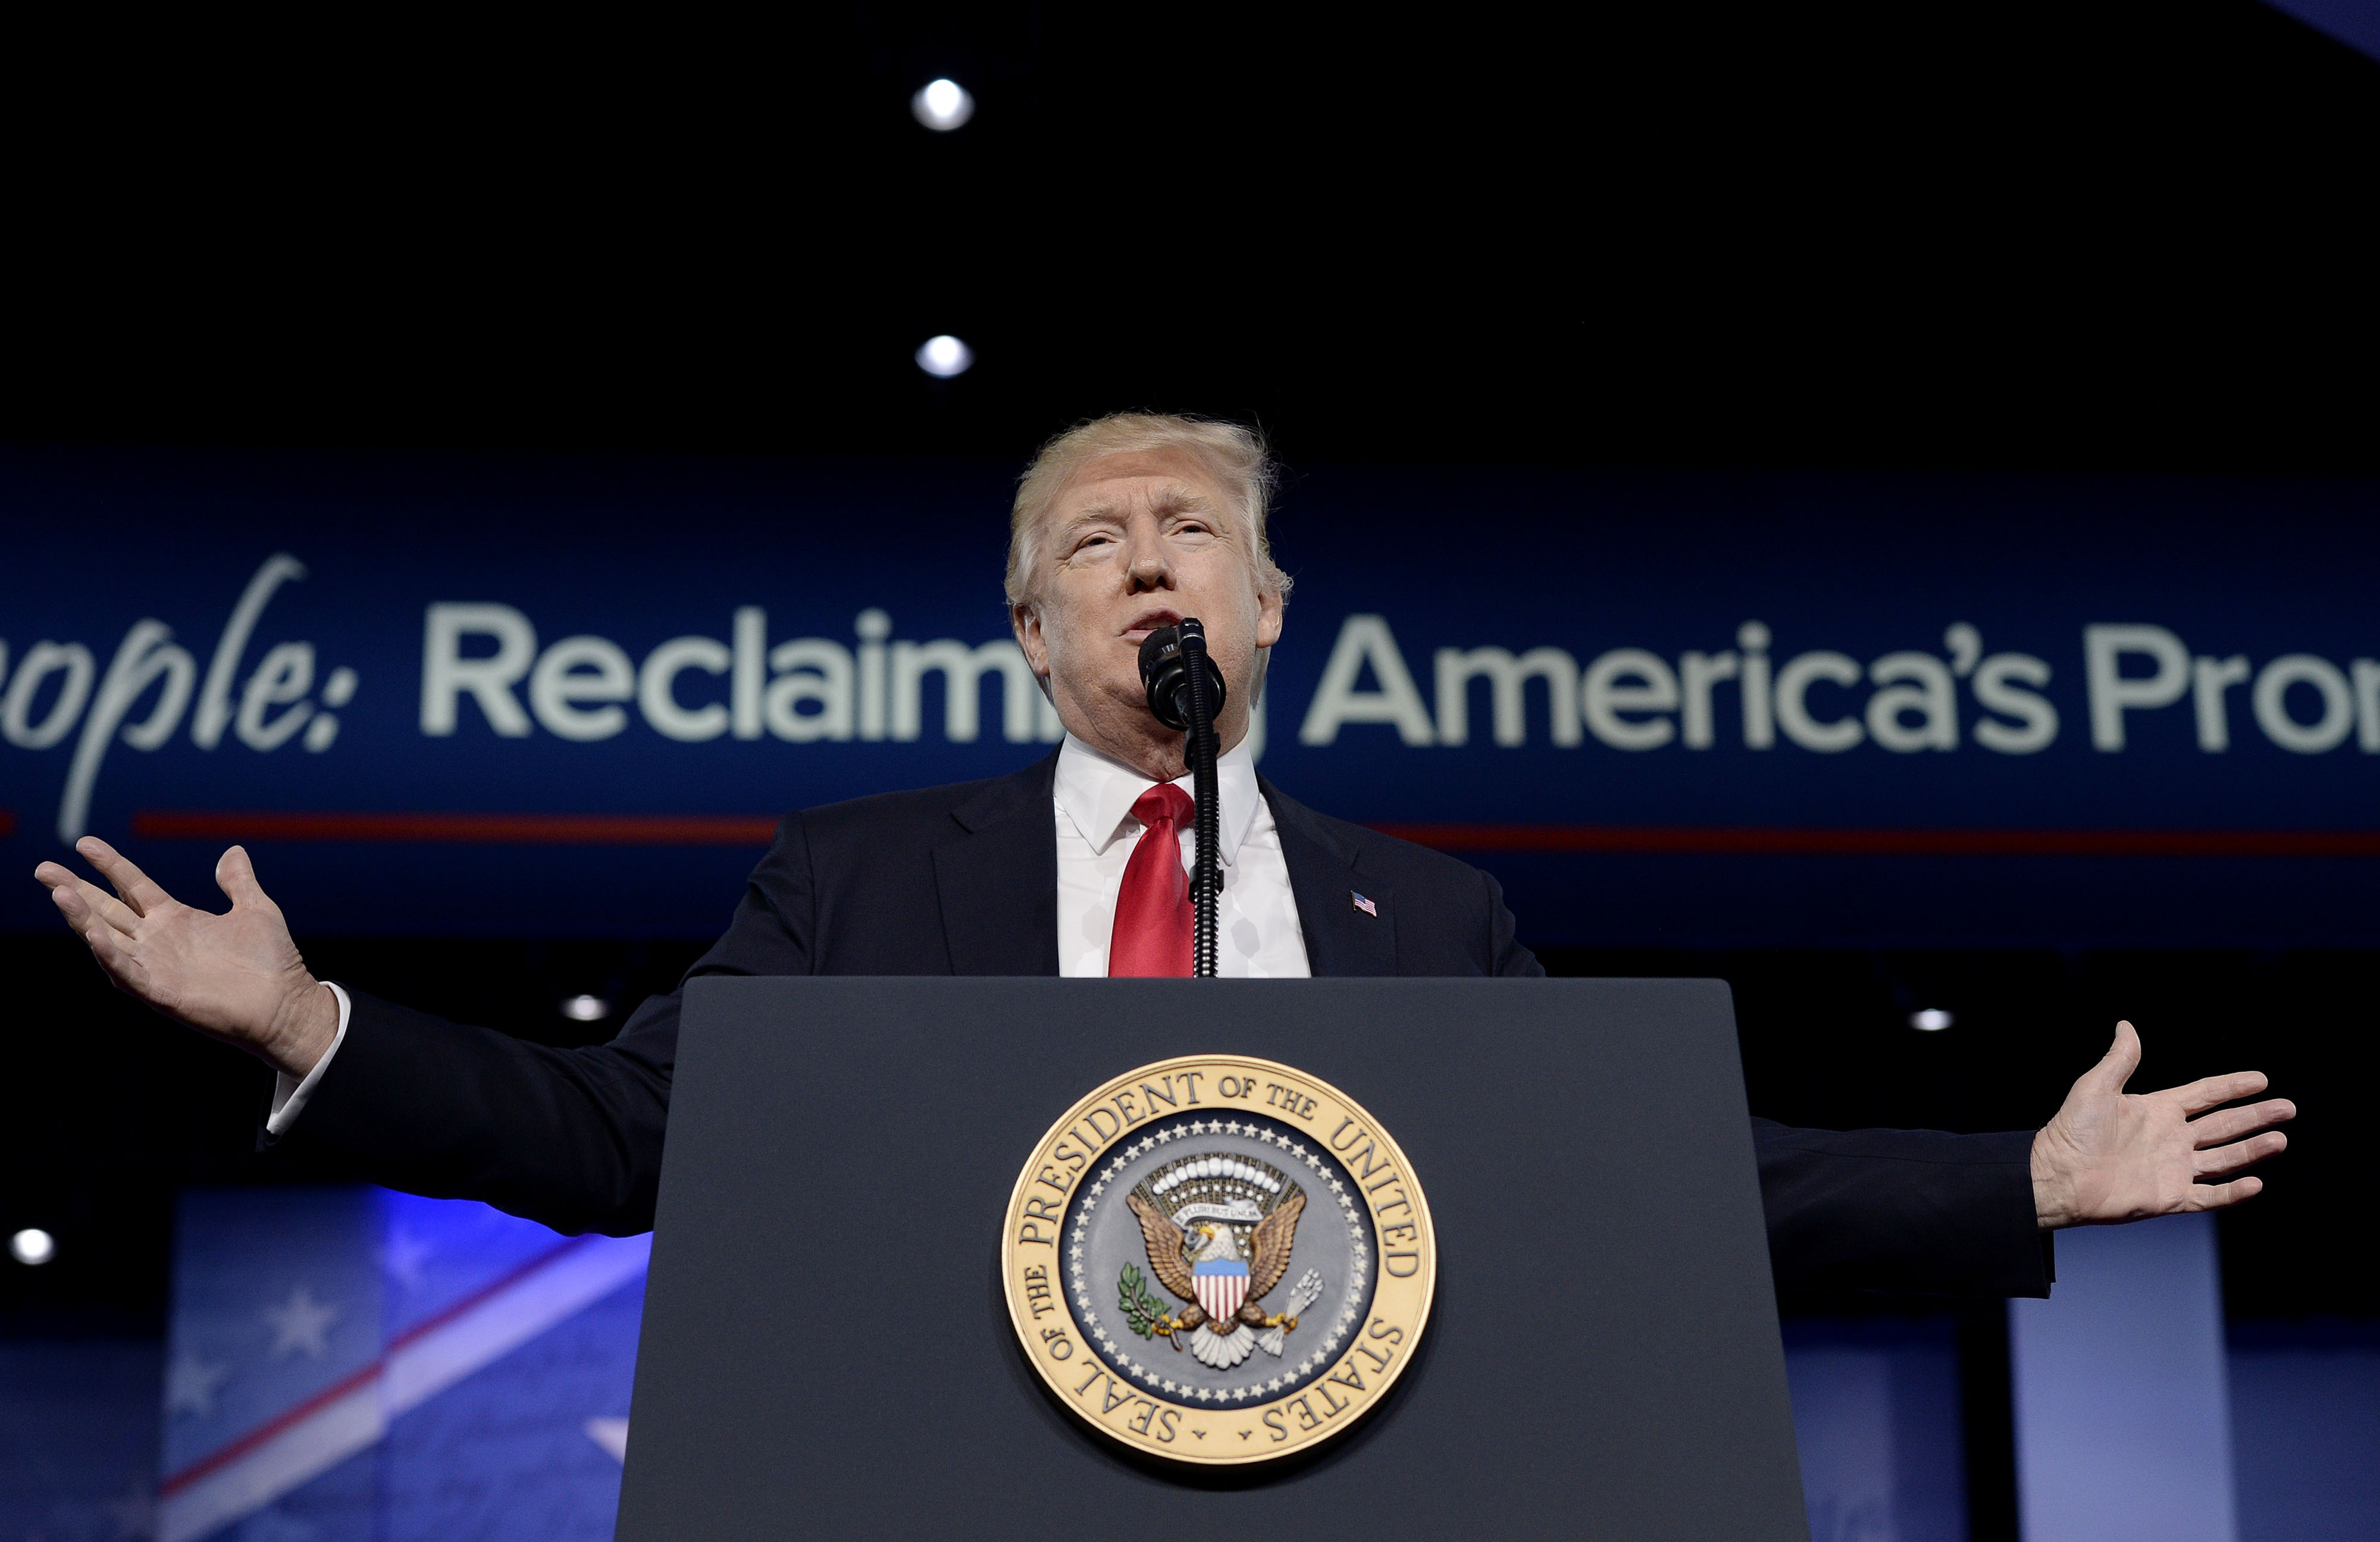 President Trump Addresses Annual CPAC Event In National Harbor, Maryland